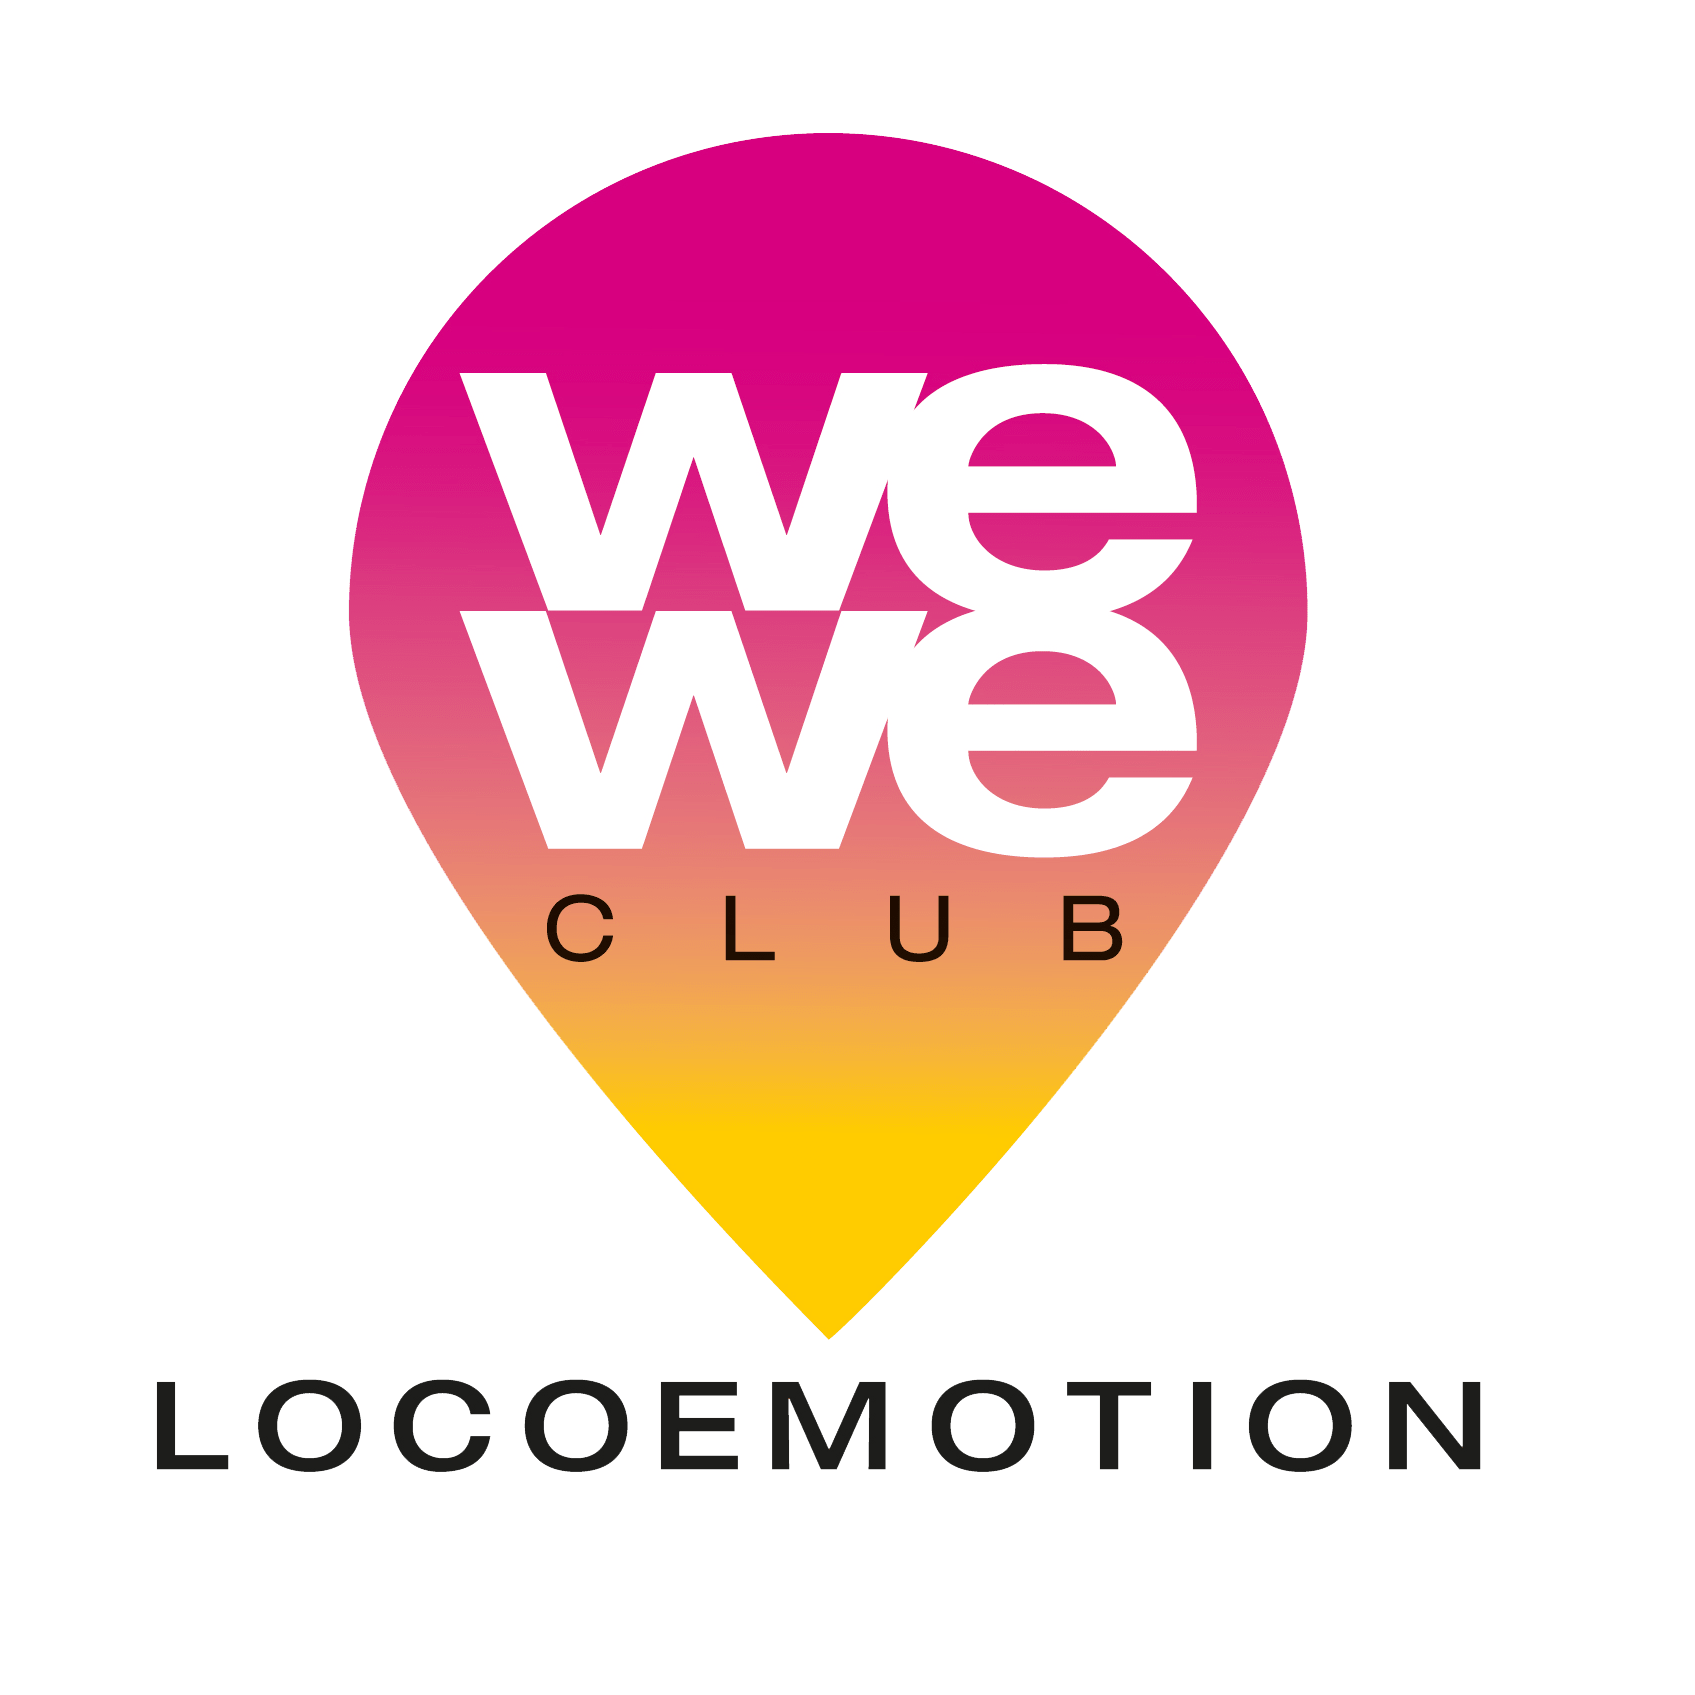 Logo WeWE_exe_colore-01 (3)-min.png